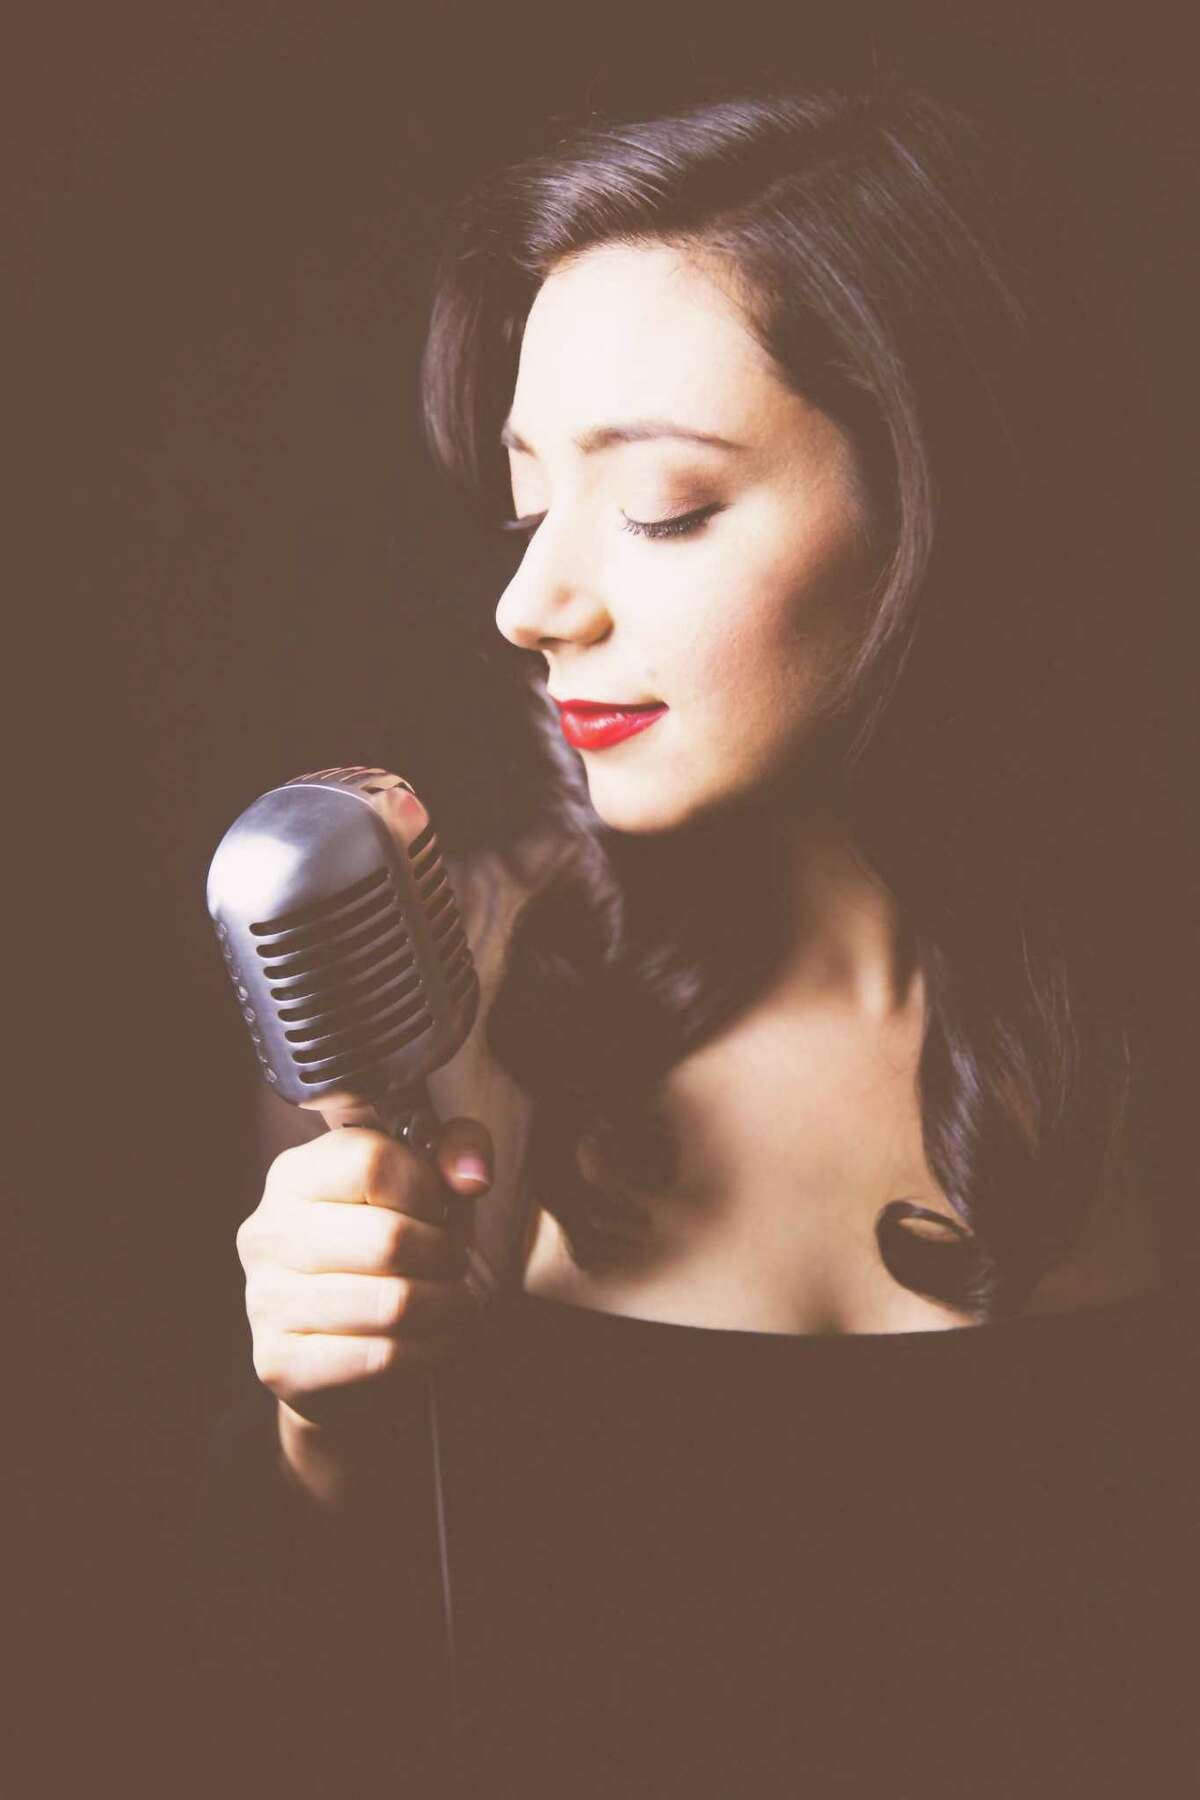 Actor and singer Julie Benko, who grew up in Fairfield, has just released her first jazz CD,